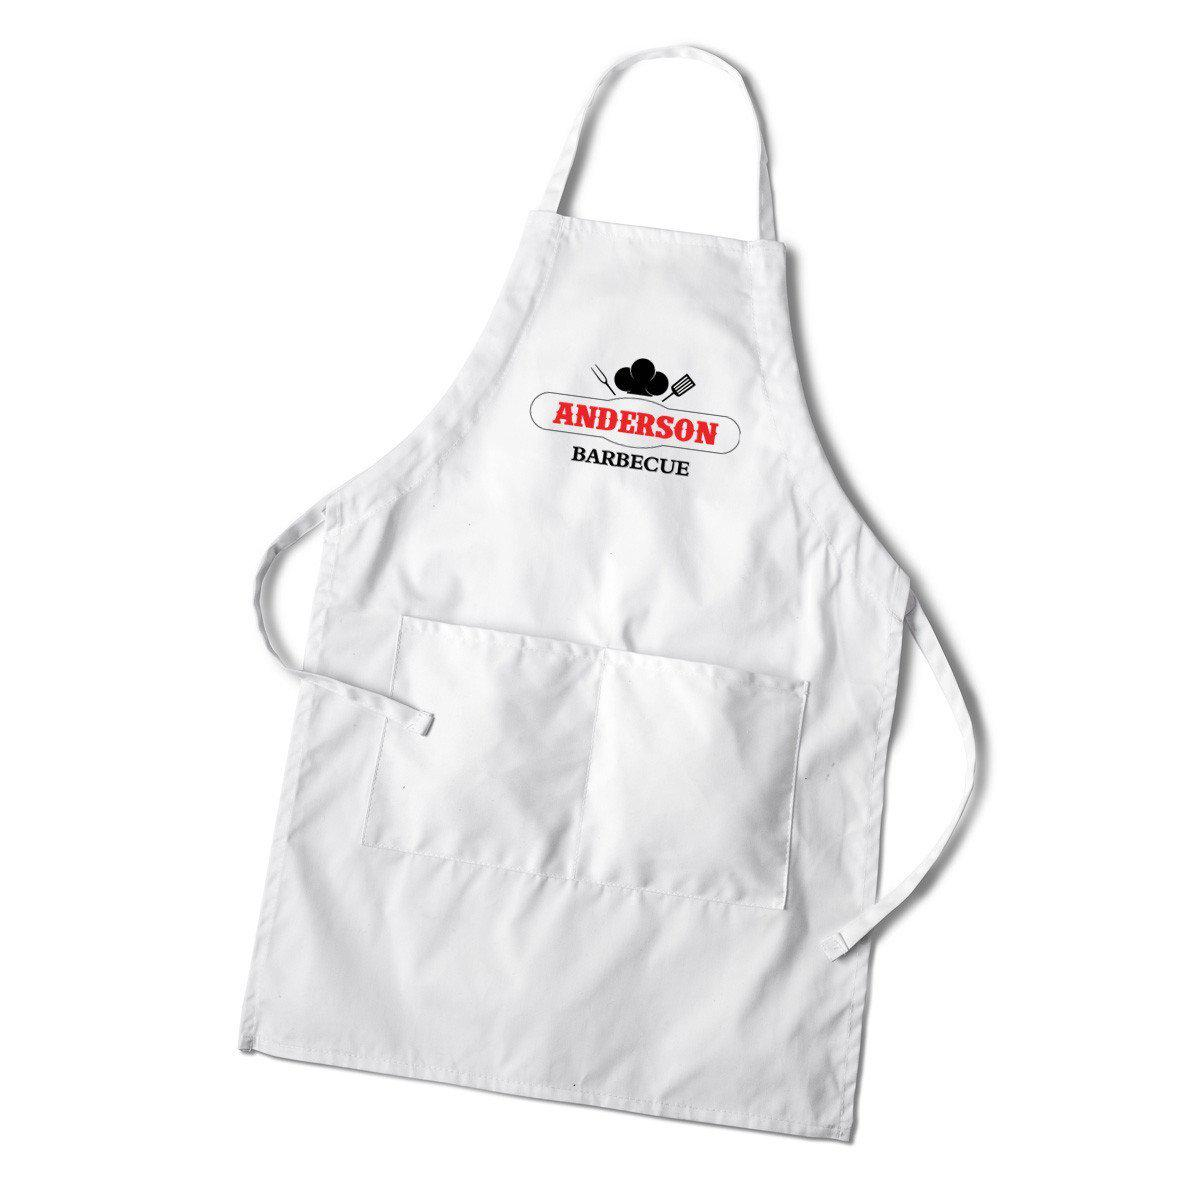 Personalized BBQ and Grilling Apron